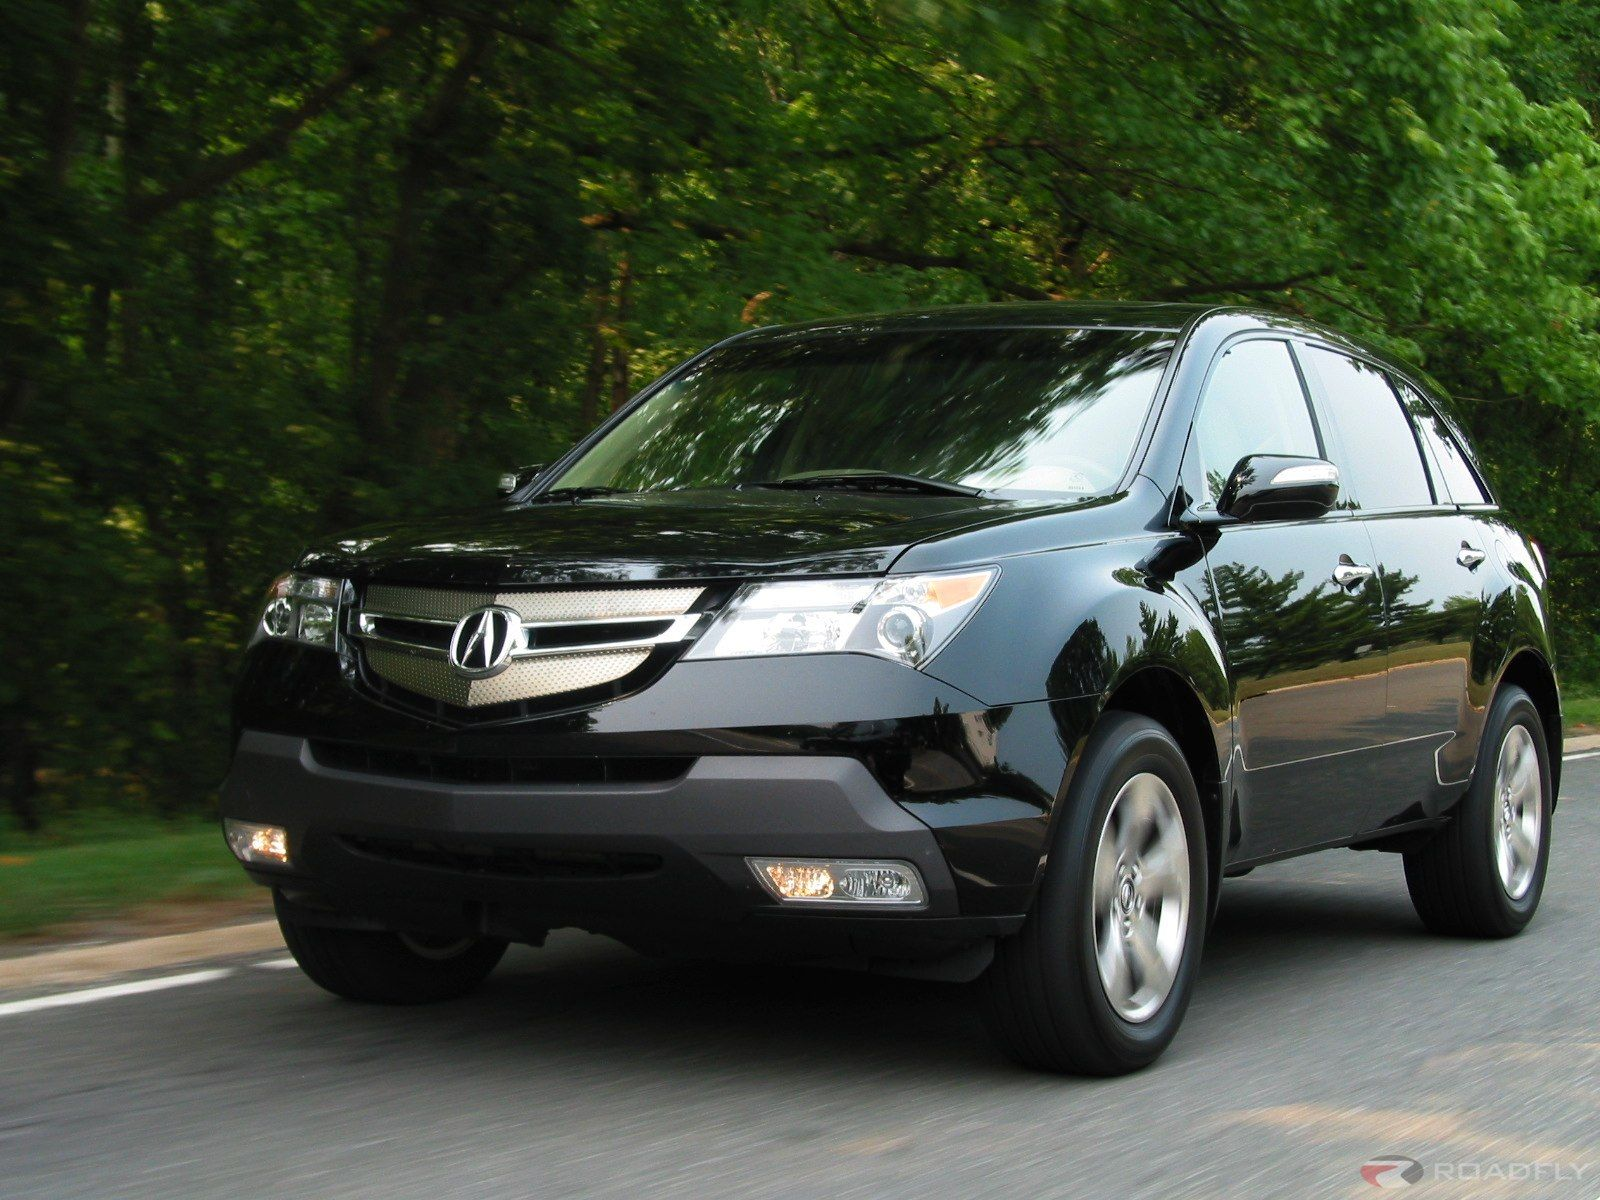 pictures acura mdx photo  Honda Acura  Pinterest  Models Honda